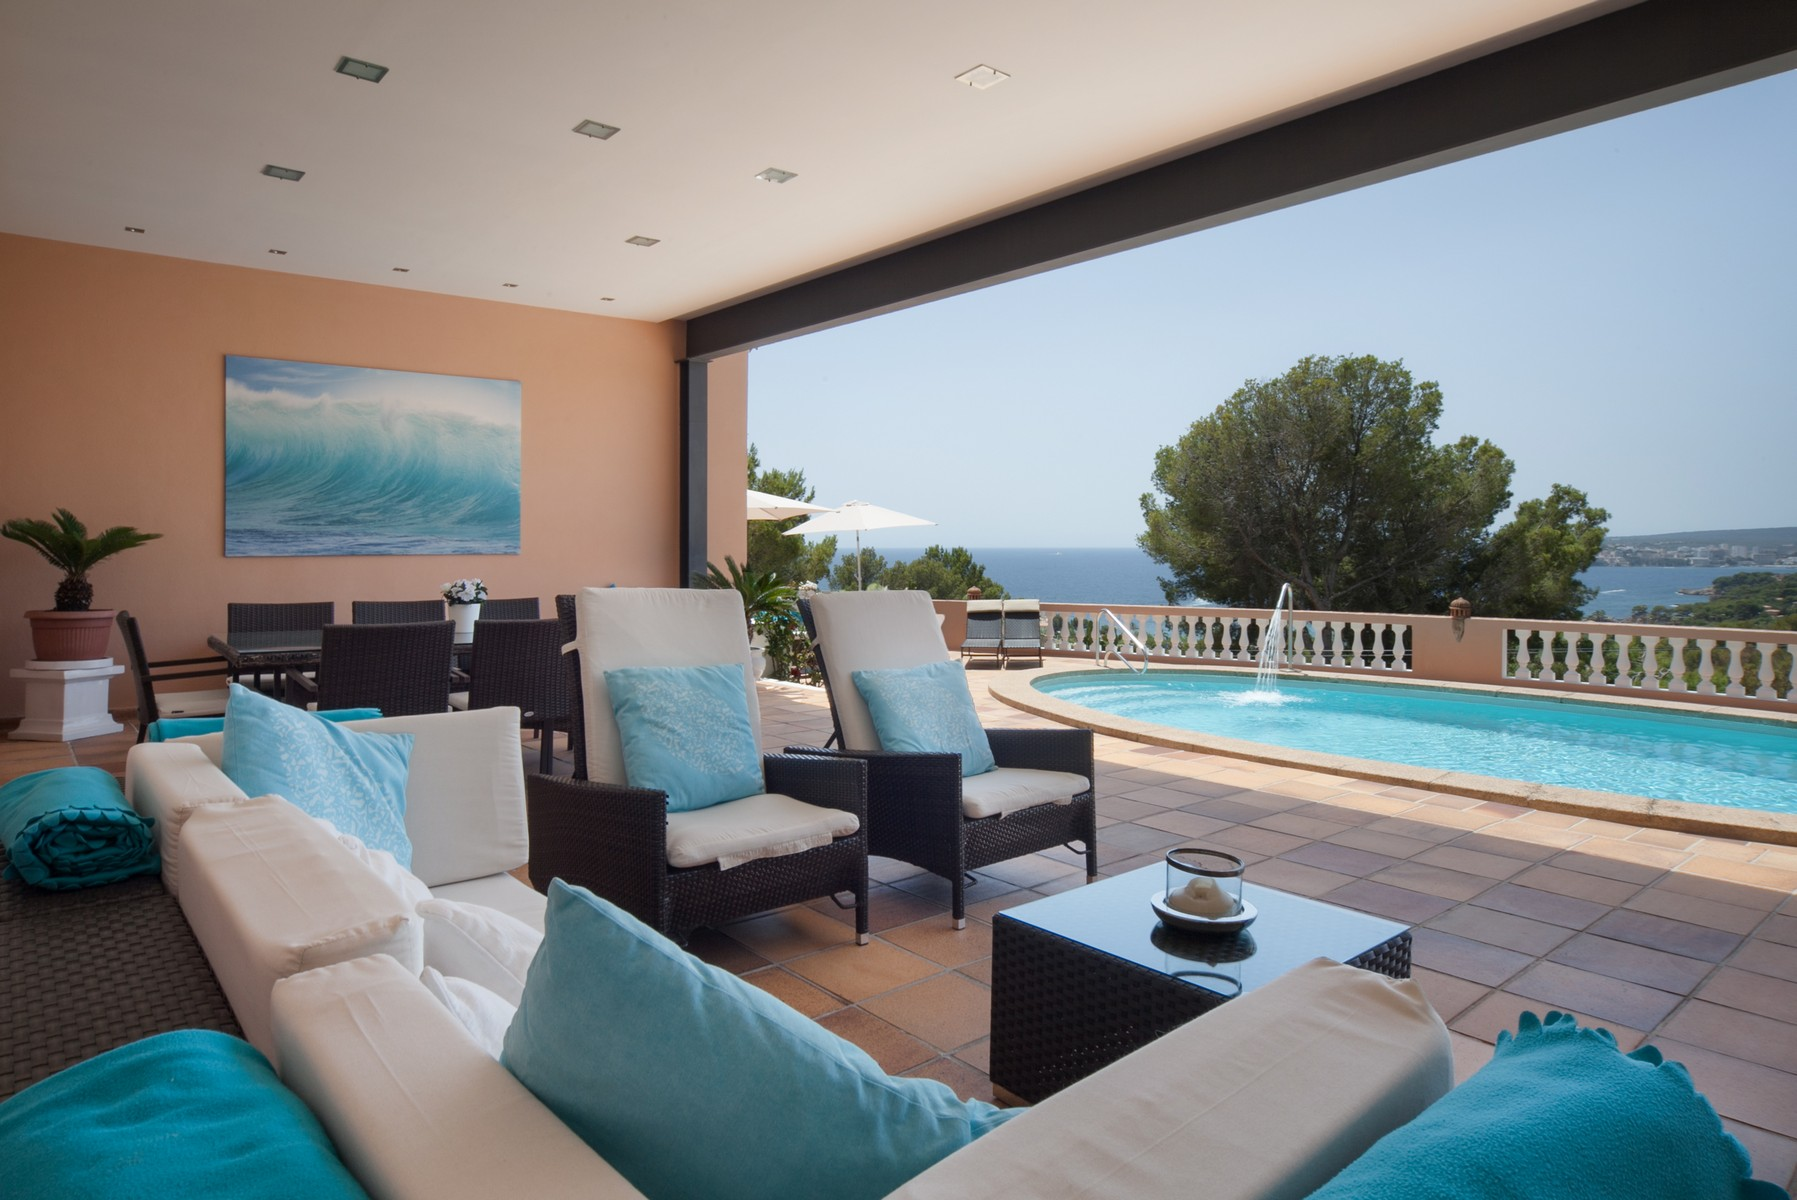 Single Family Home for Rent at Villa with sea view in Costa d'en Blanes Costa Den Blanes, Mallorca 07180 Spain